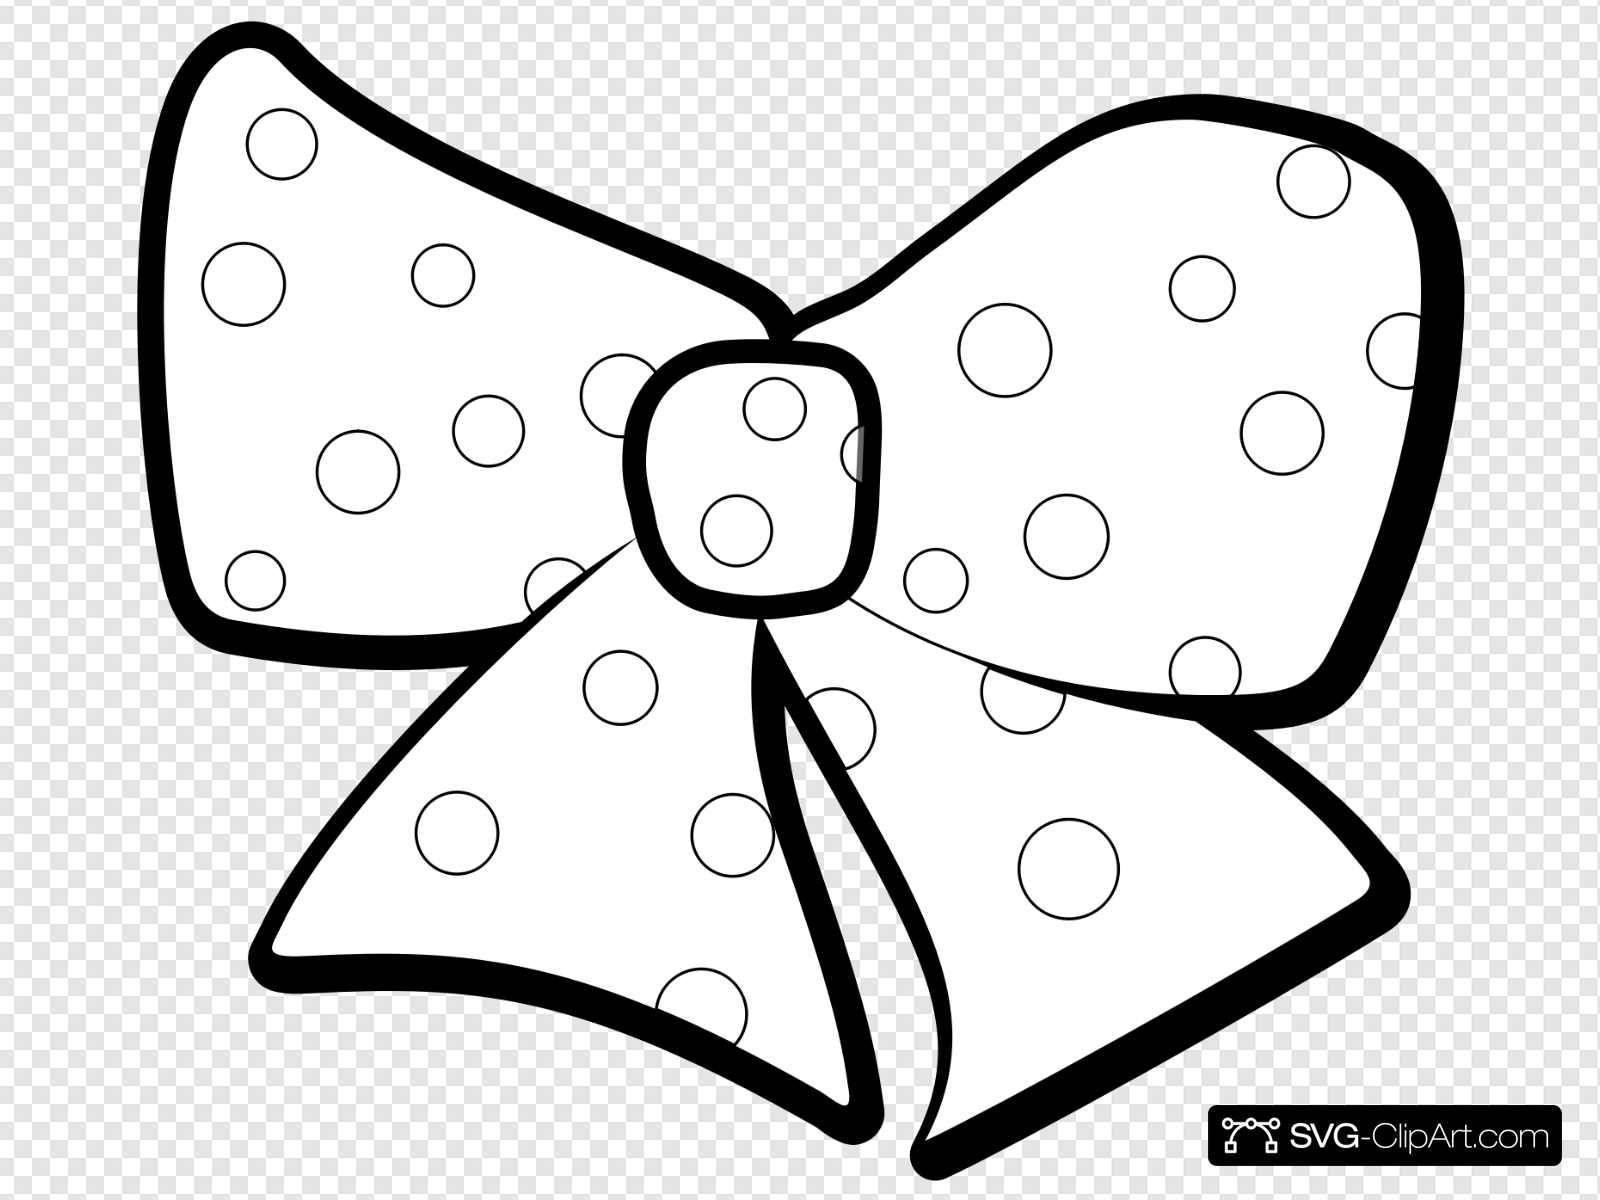 Bow Outline Clip art, Icon and SVG.